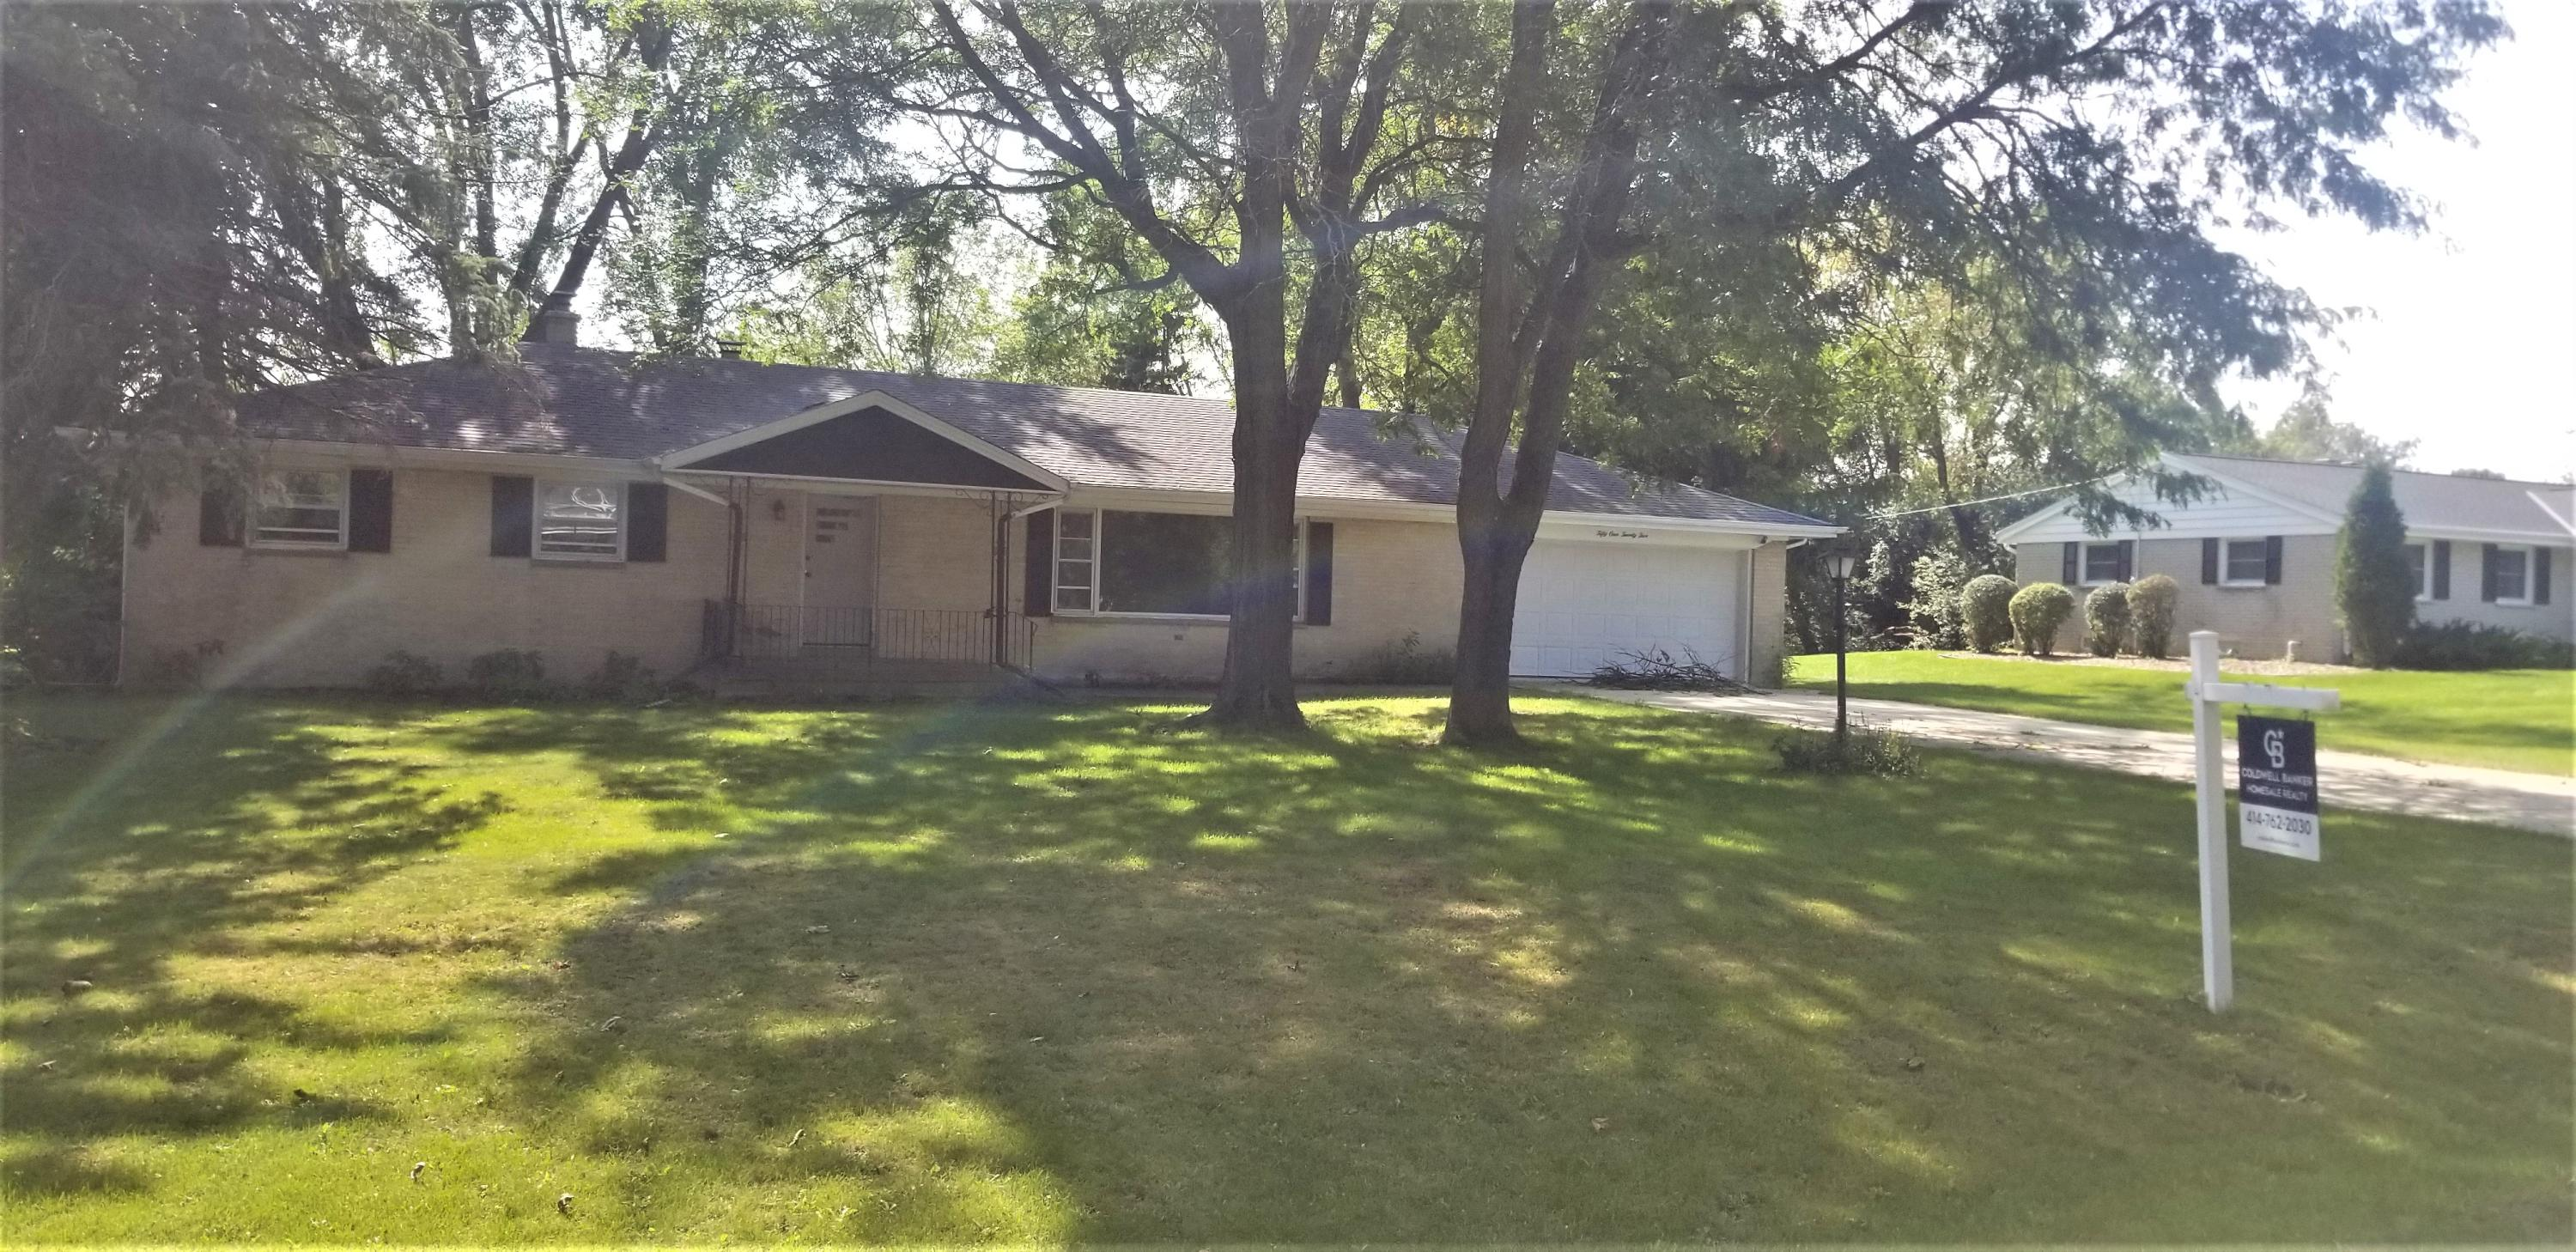 5125 Cortland Ave, Mount Pleasant, Wisconsin 53406, 3 Bedrooms Bedrooms, ,2 BathroomsBathrooms,Single-family,For Sale,Cortland Ave,1710768